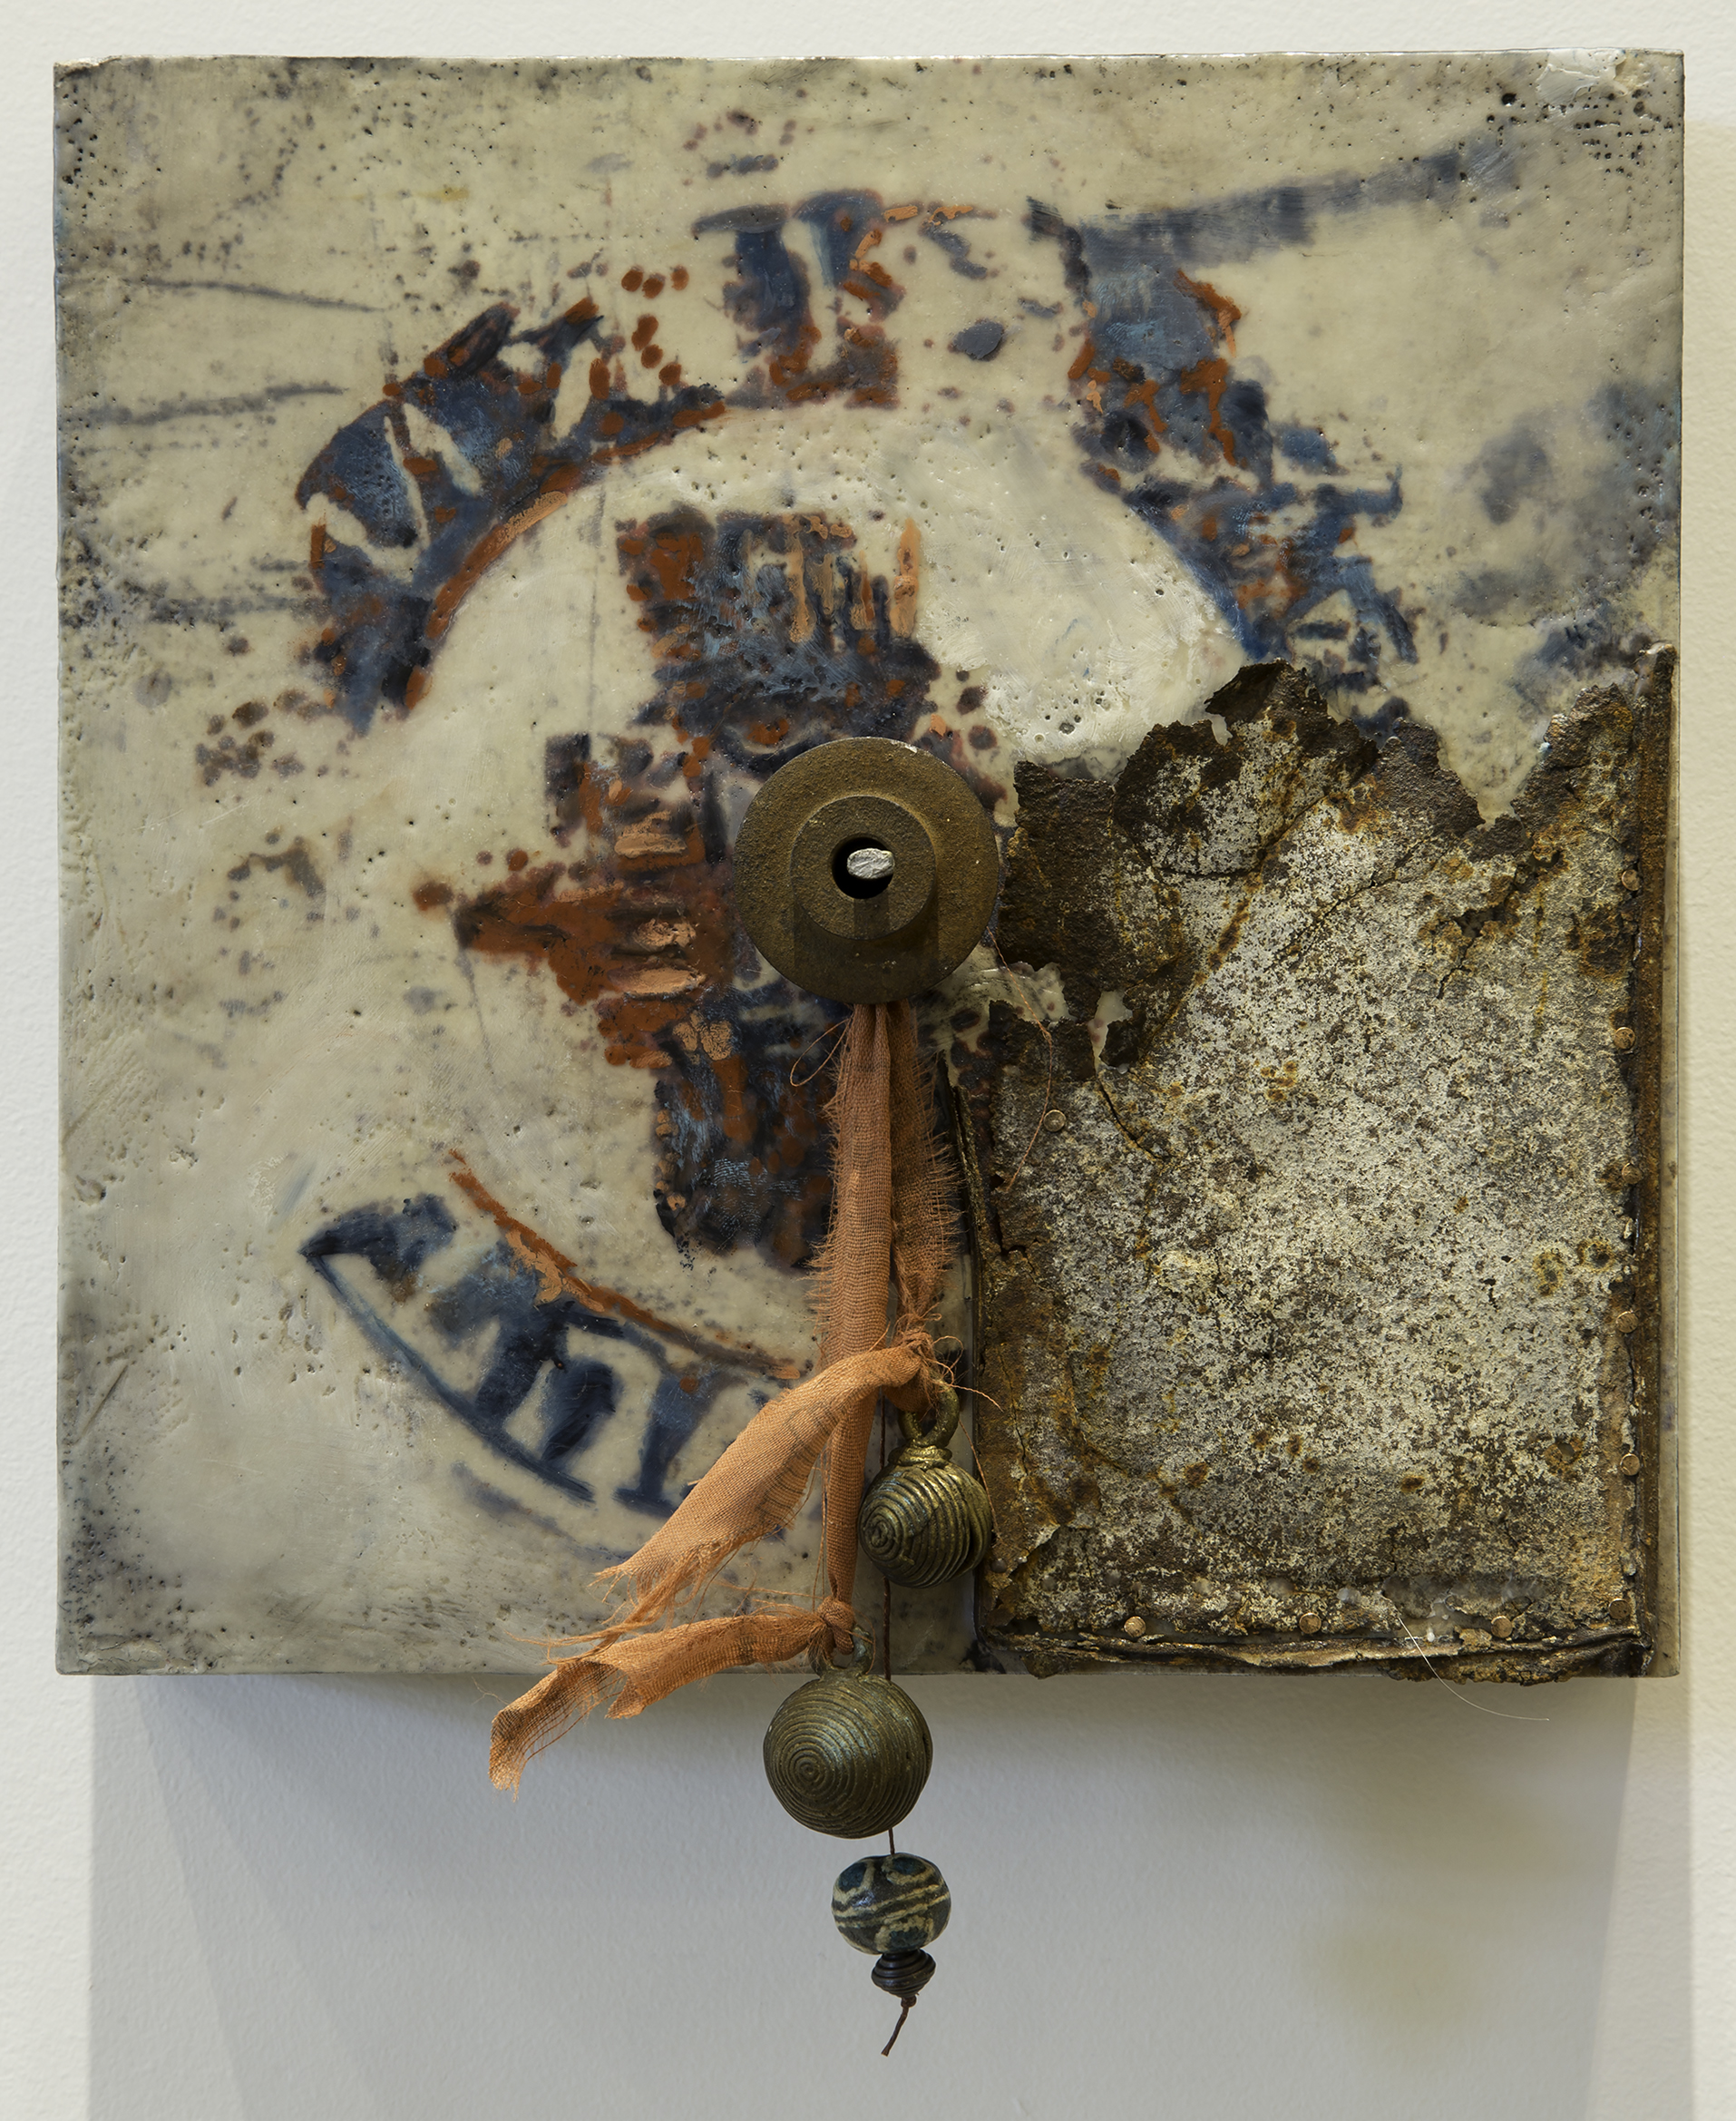 Dimensions:  10 x 12 x 3 in.  Media:  Encaustic, mixed media on panel  Year:  2011  Location:  CES Studio